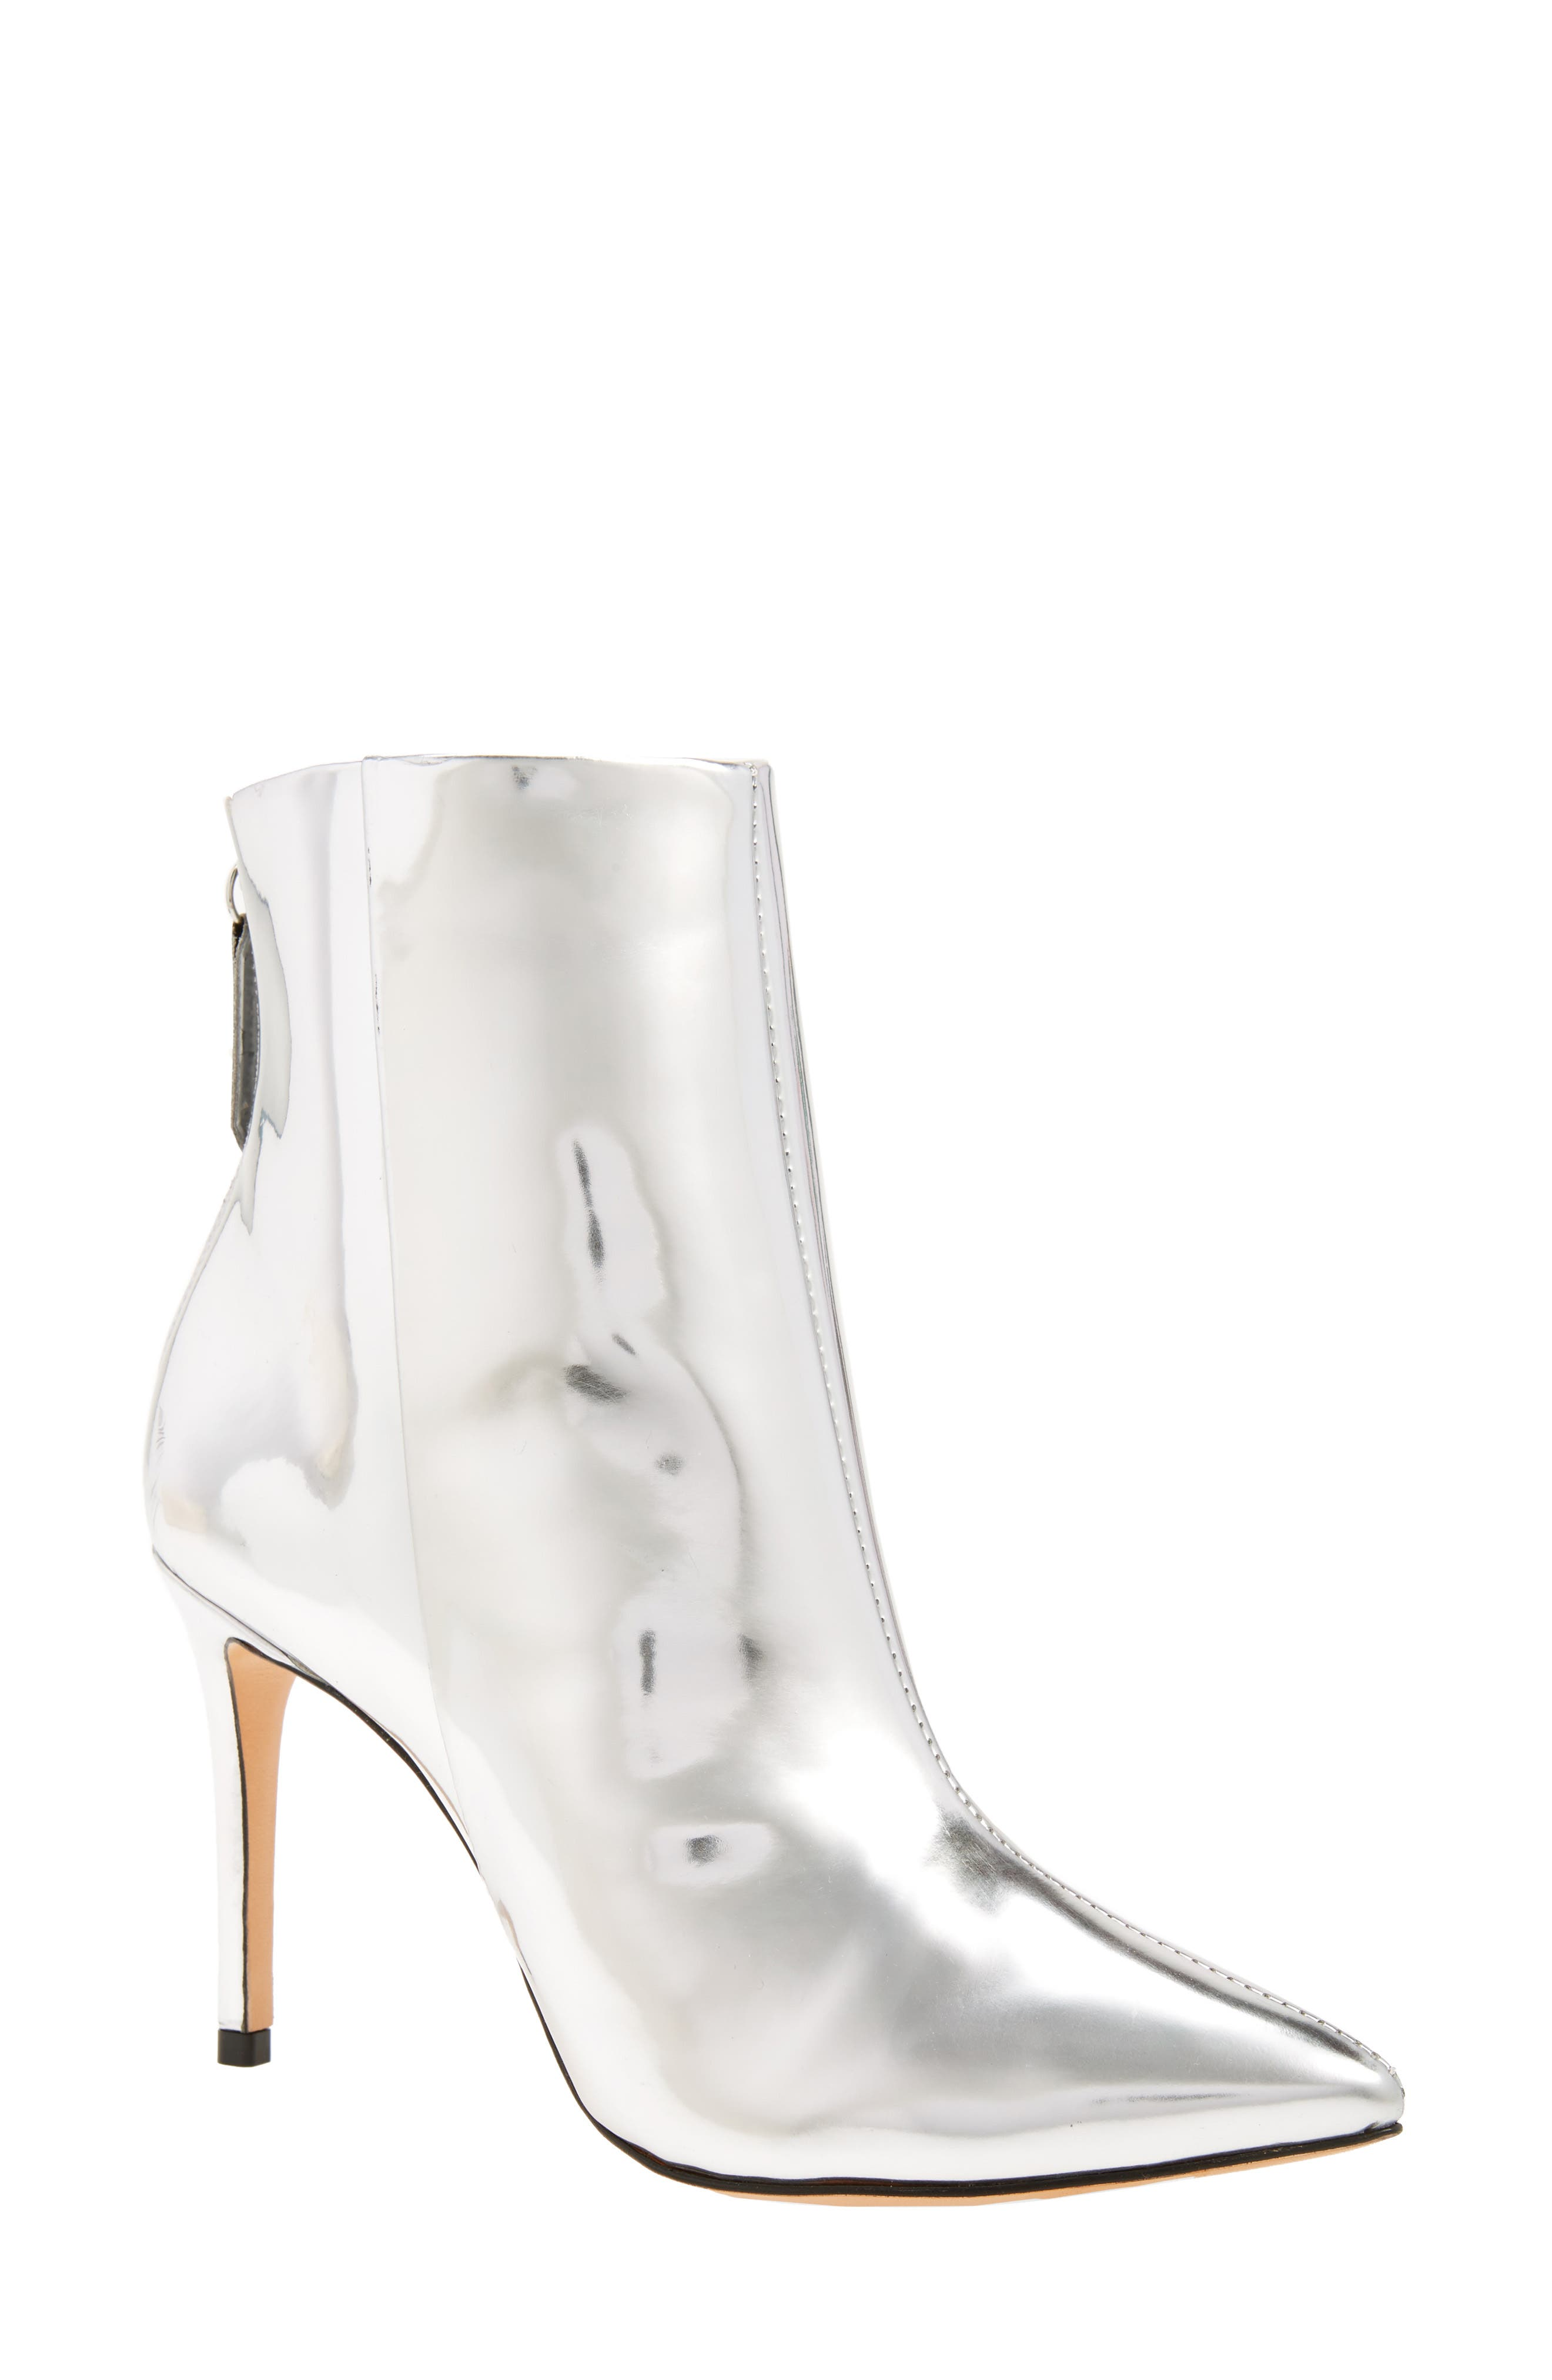 Ginny Pointy Toe Bootie,                             Main thumbnail 1, color,                             042